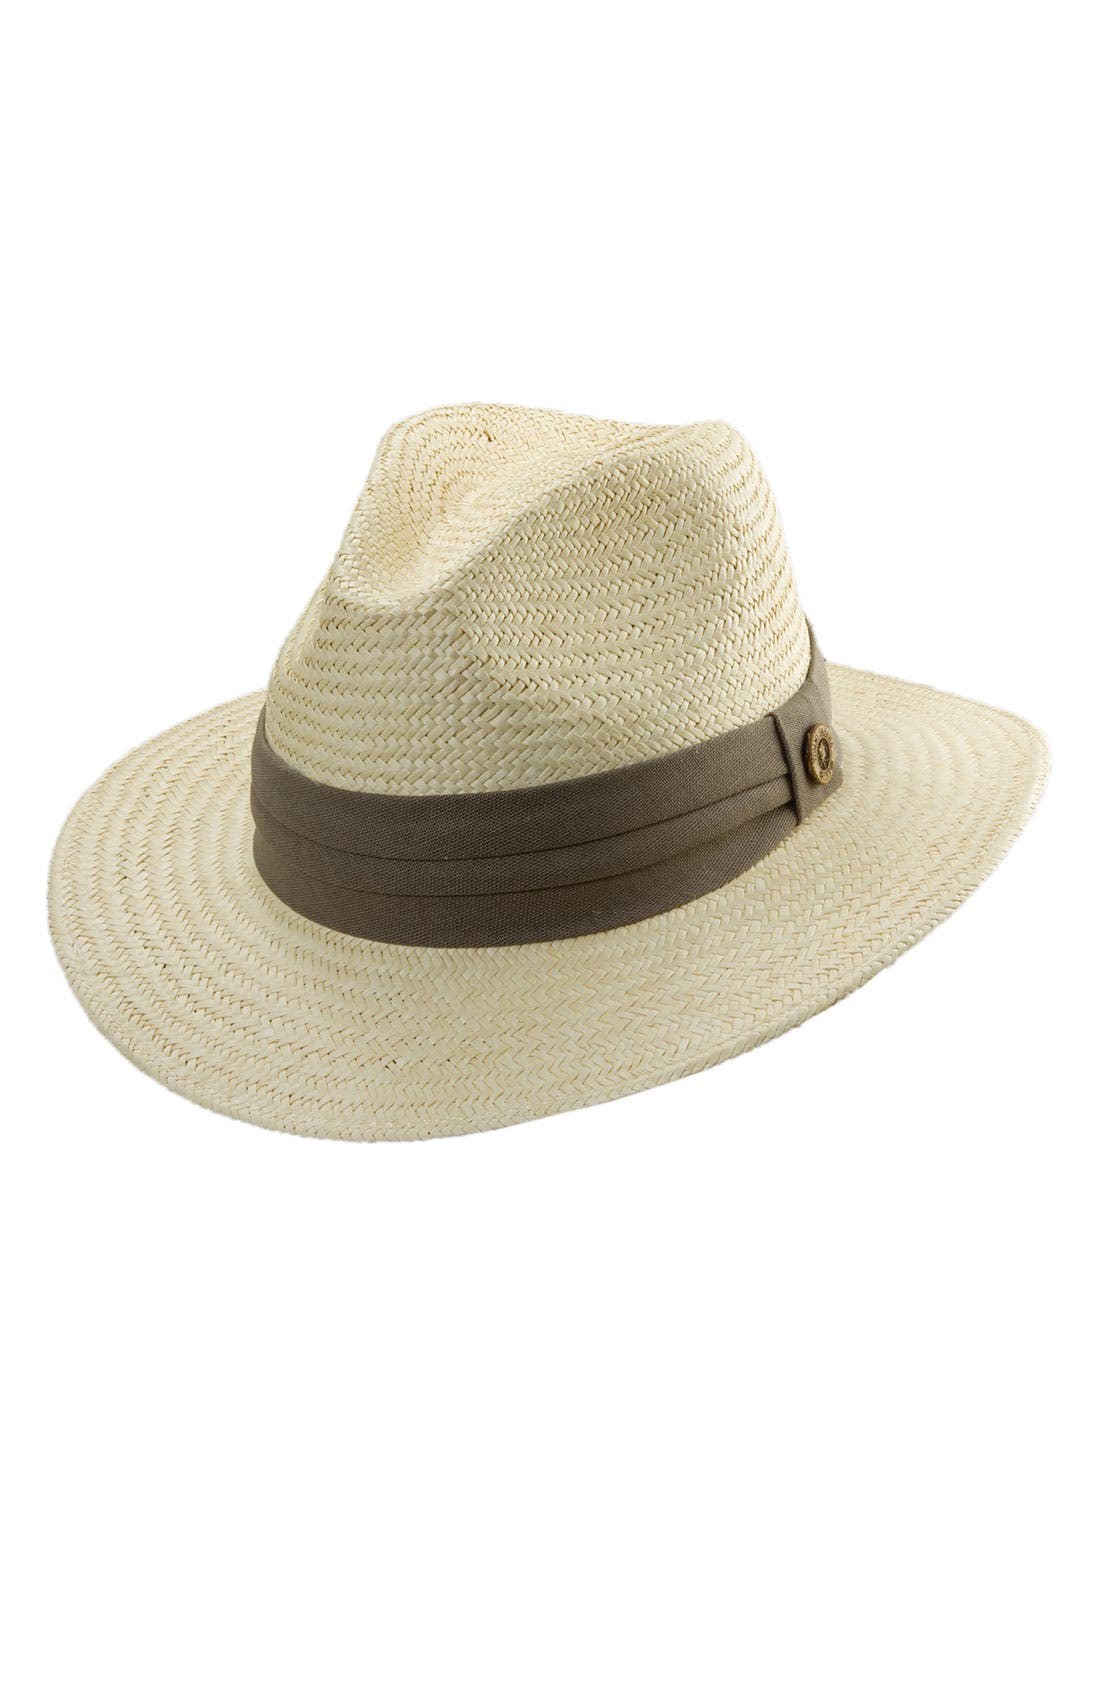 Alternate Image 1 Selected - Tommy Bahama 'Golf' Palm Fiber Fedora